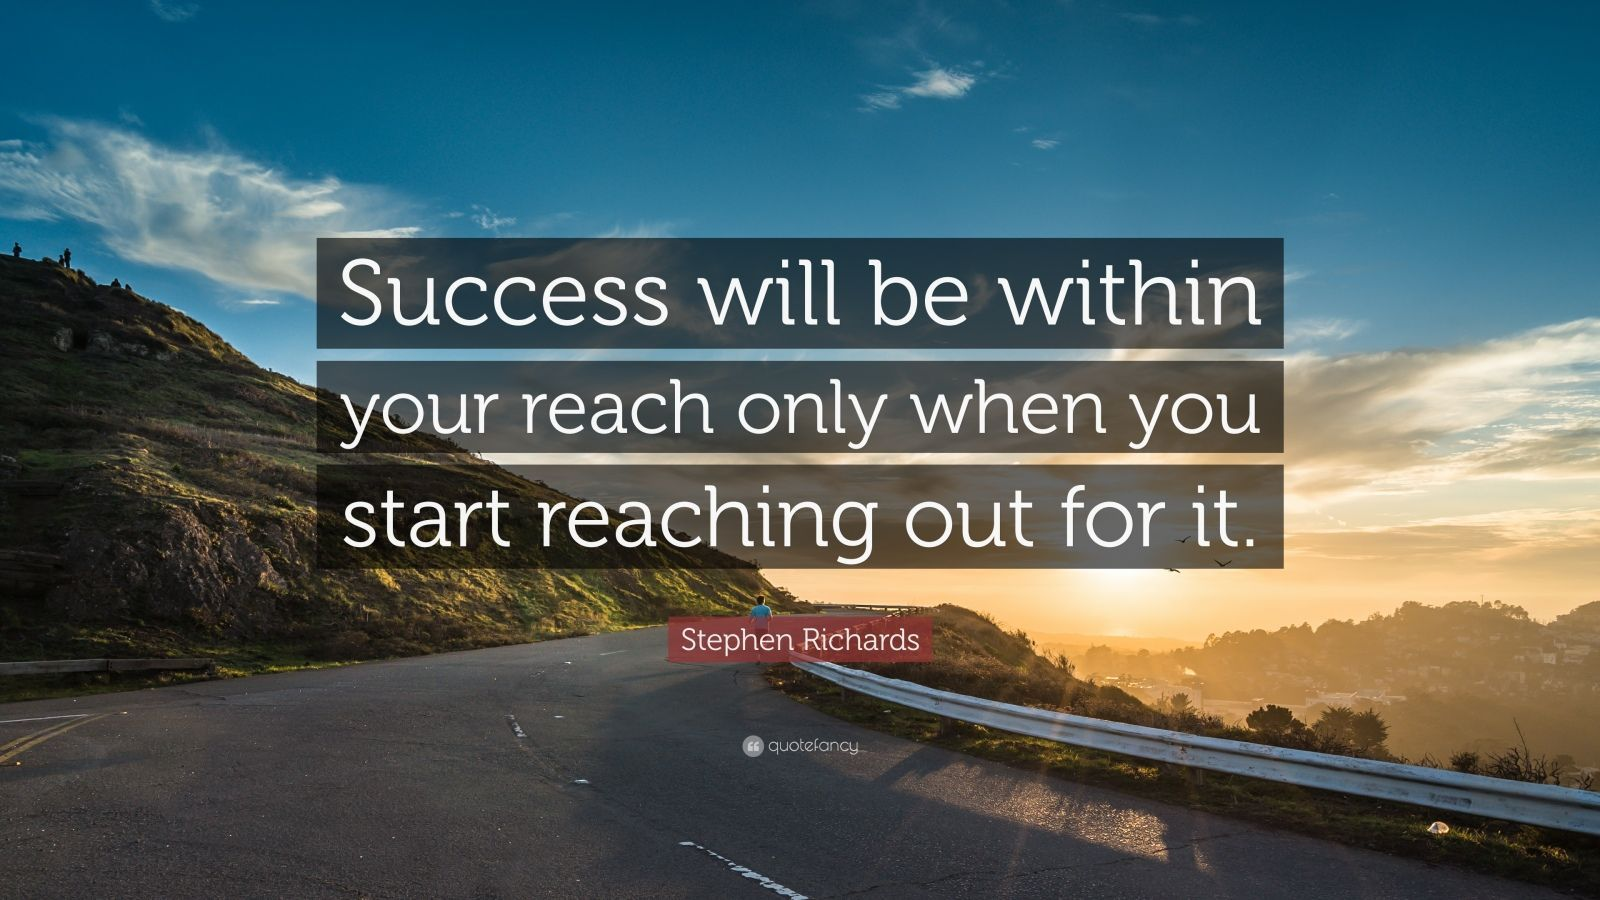 Road To Success Quotes Quote_Of_The_Day  Quote Of The Day  Pinterest  Motivational